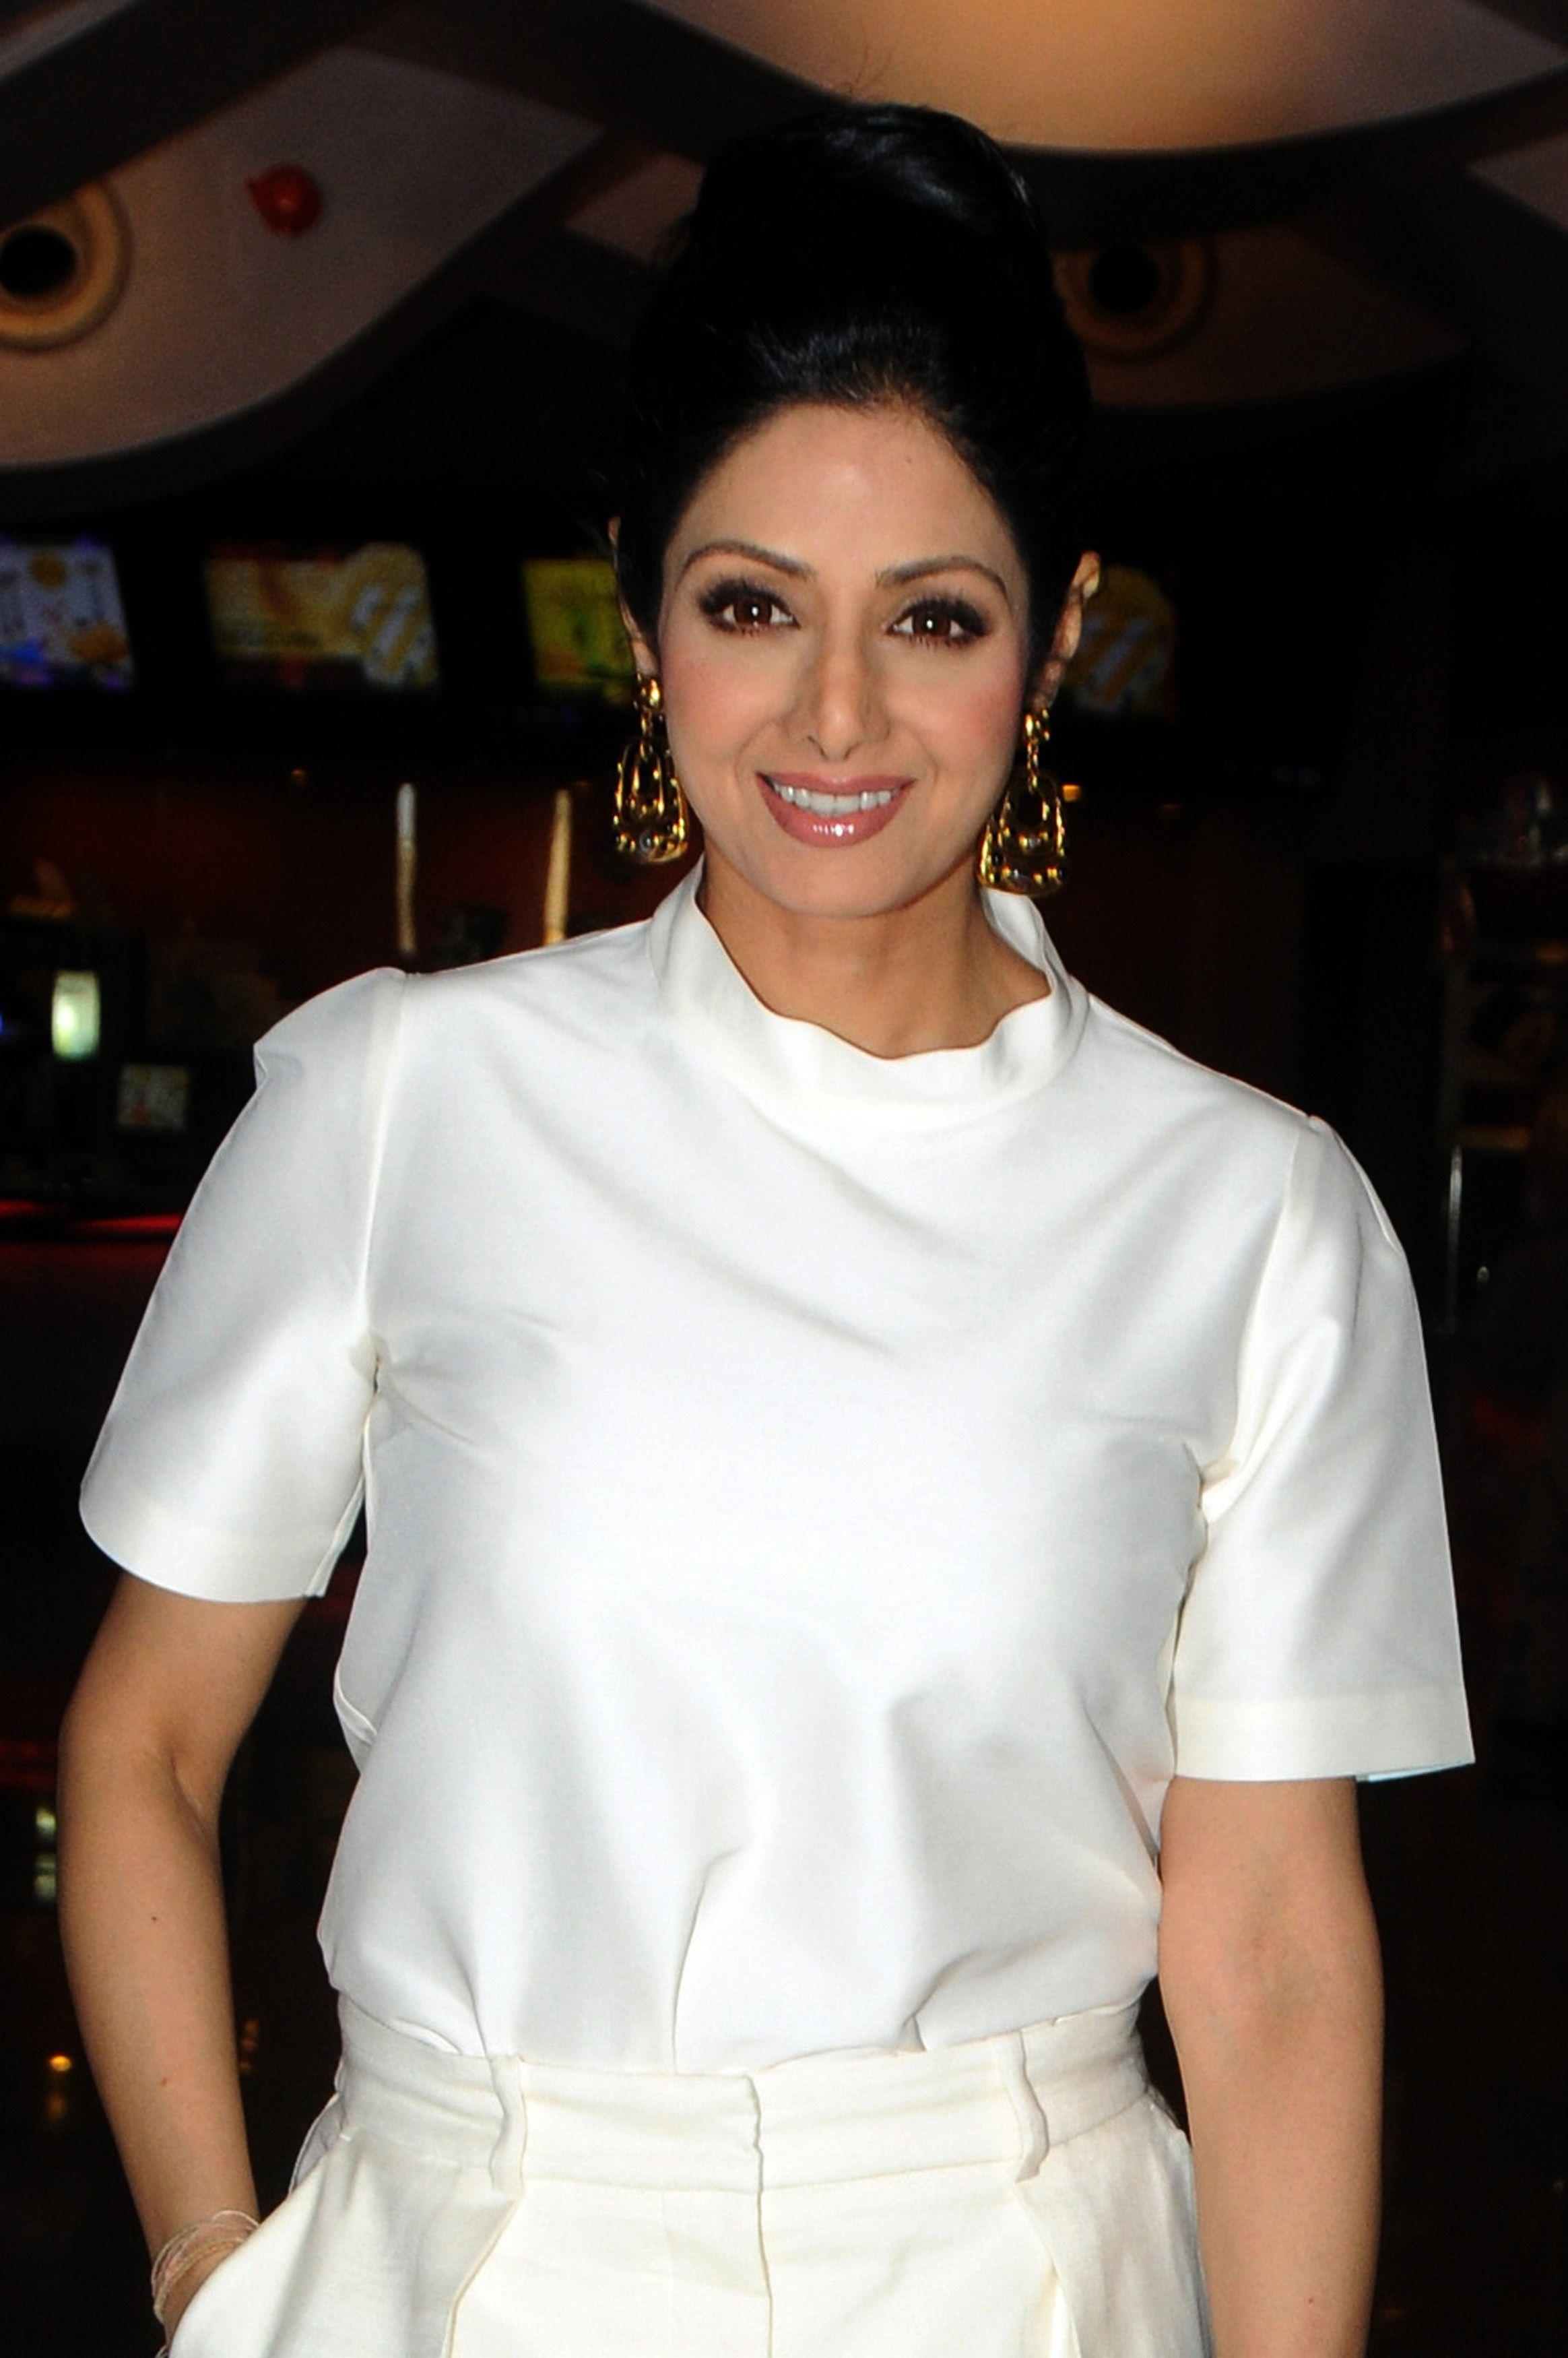 Sridevi Death: The Wait for the Forensic Report and More Questions